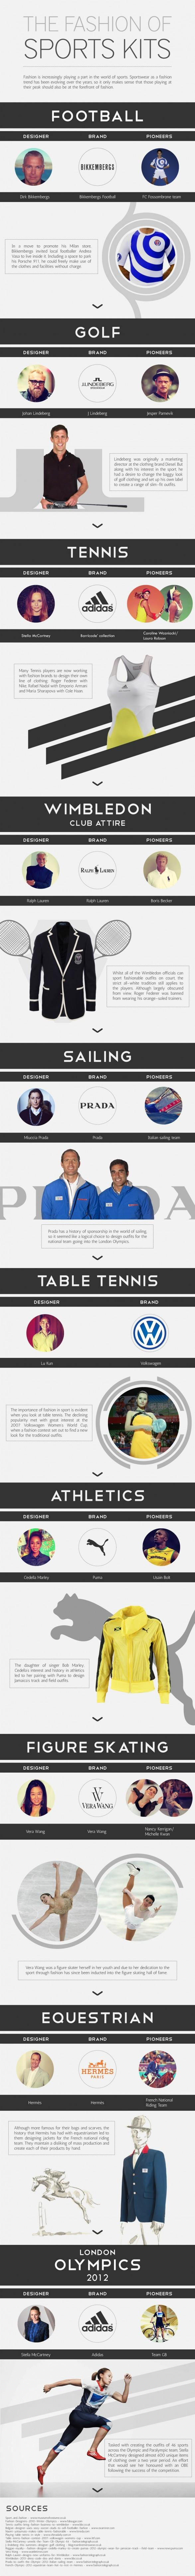 the-fashion-of-sports-kits-infographic